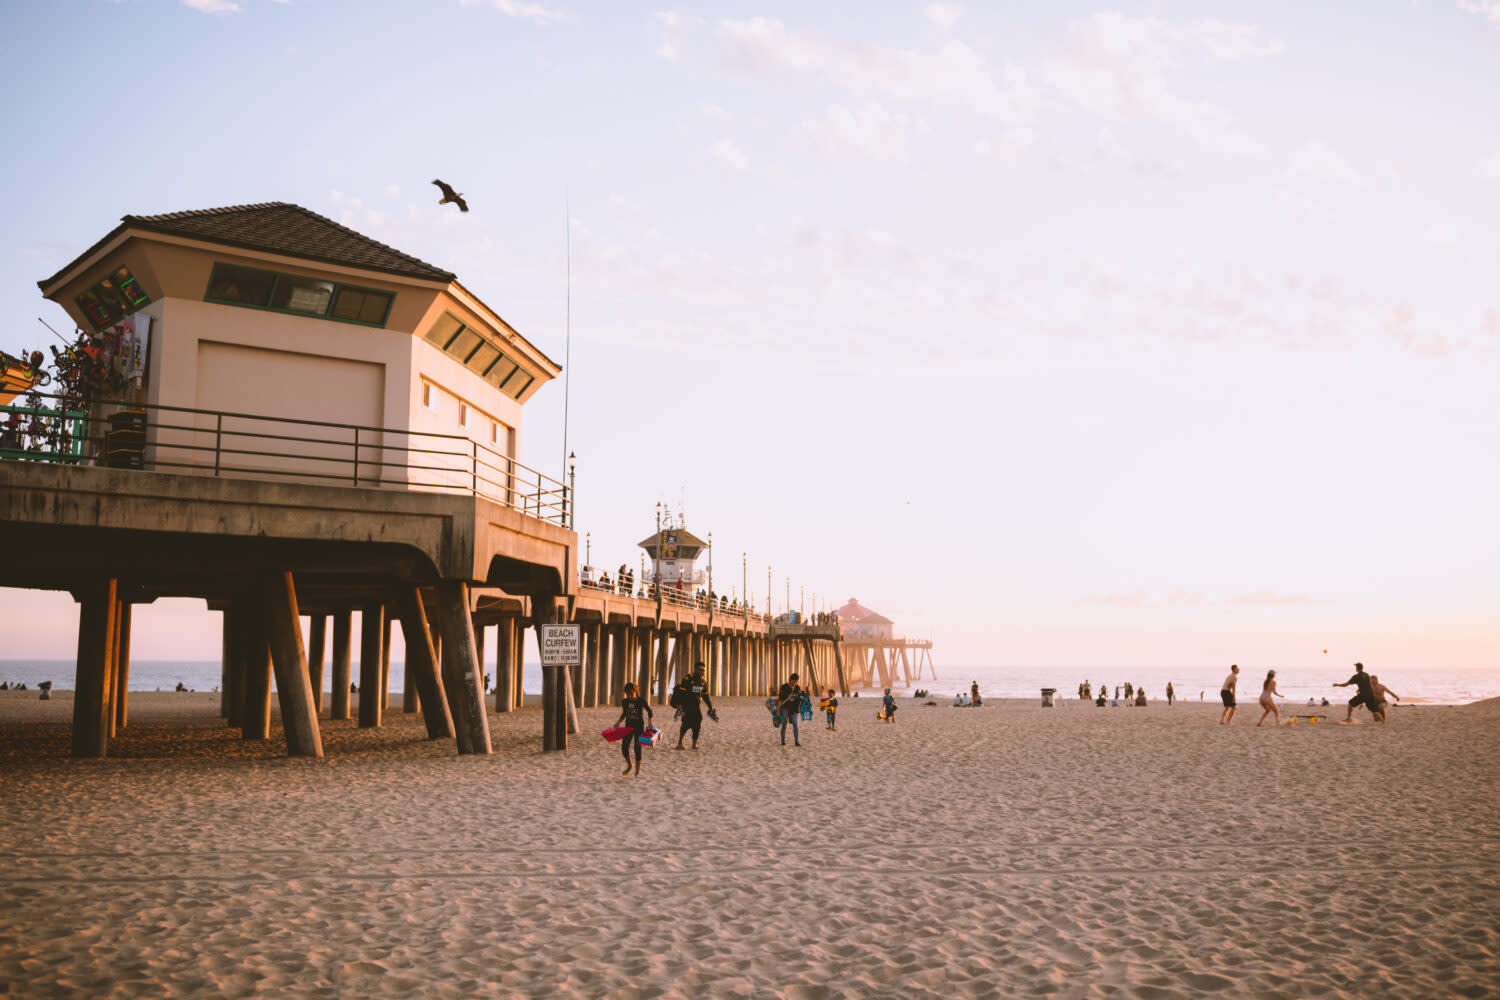 Free Things To Do In Orange County This Weekend - Surfing at Huntington Beach